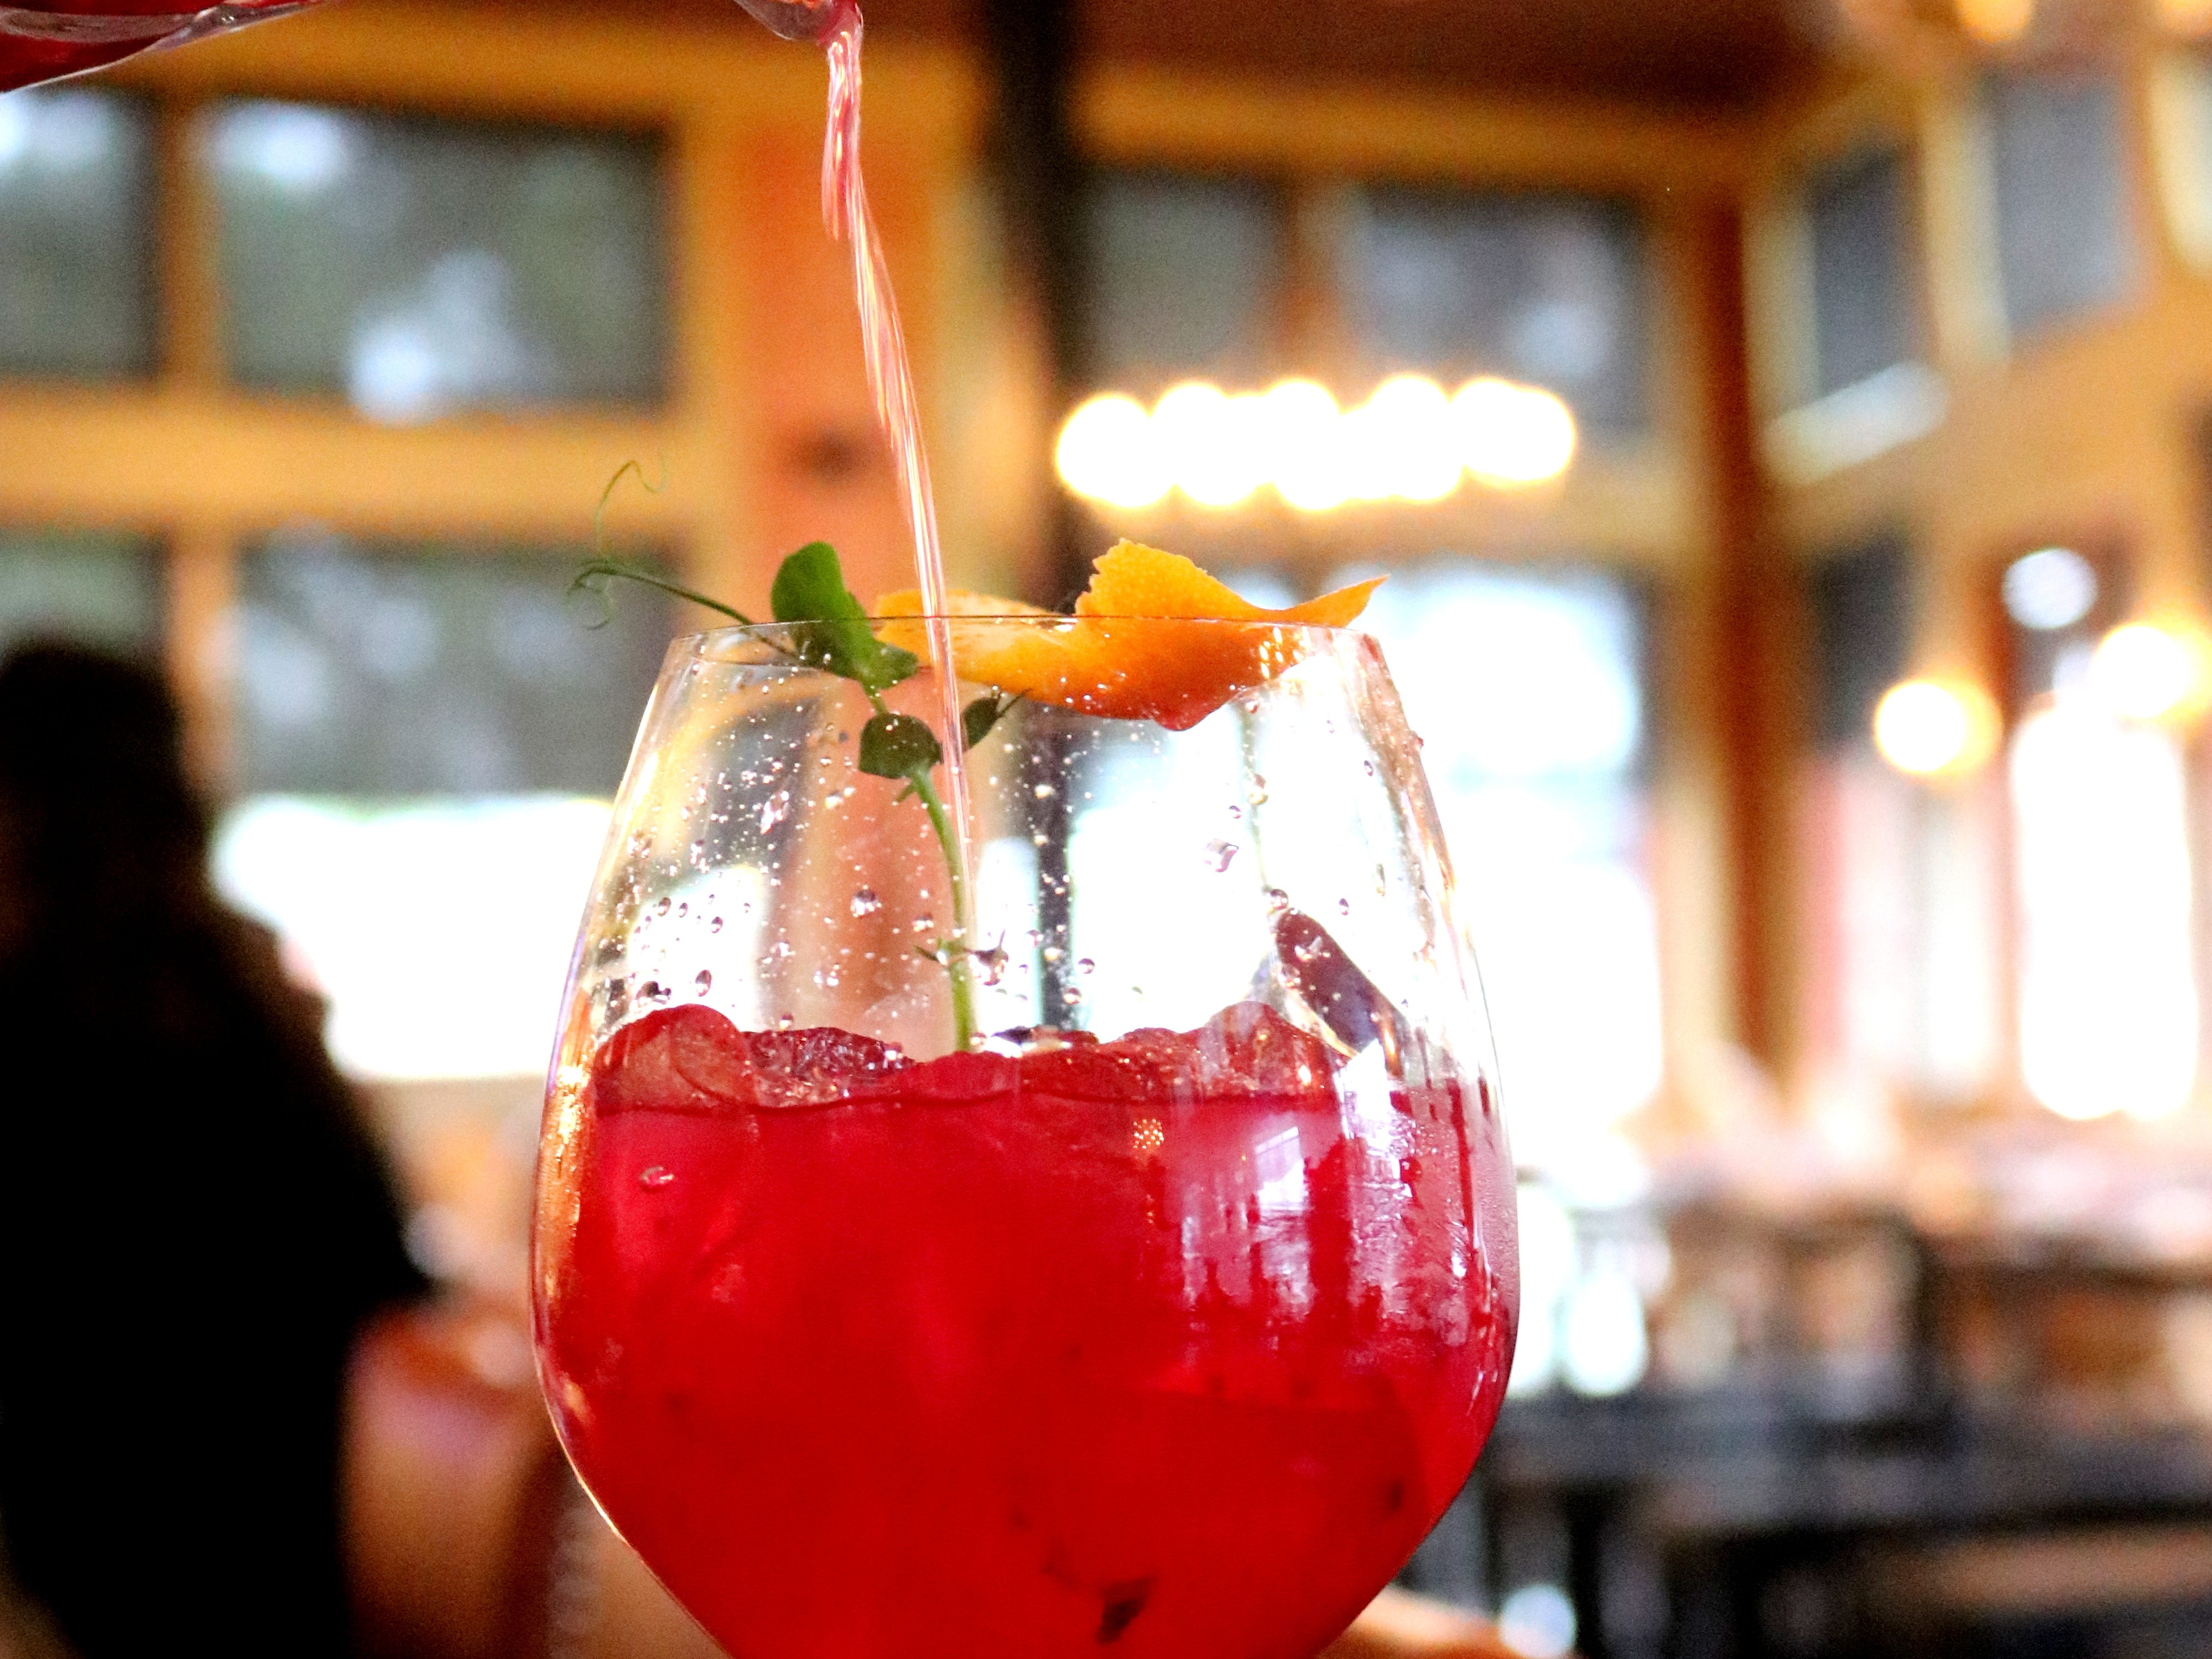 The Betabel Bellini at Hugo's in Houston. The ingredients are red beets, pink beets, blood orange, house-made honey-sage syrup and peach soda.